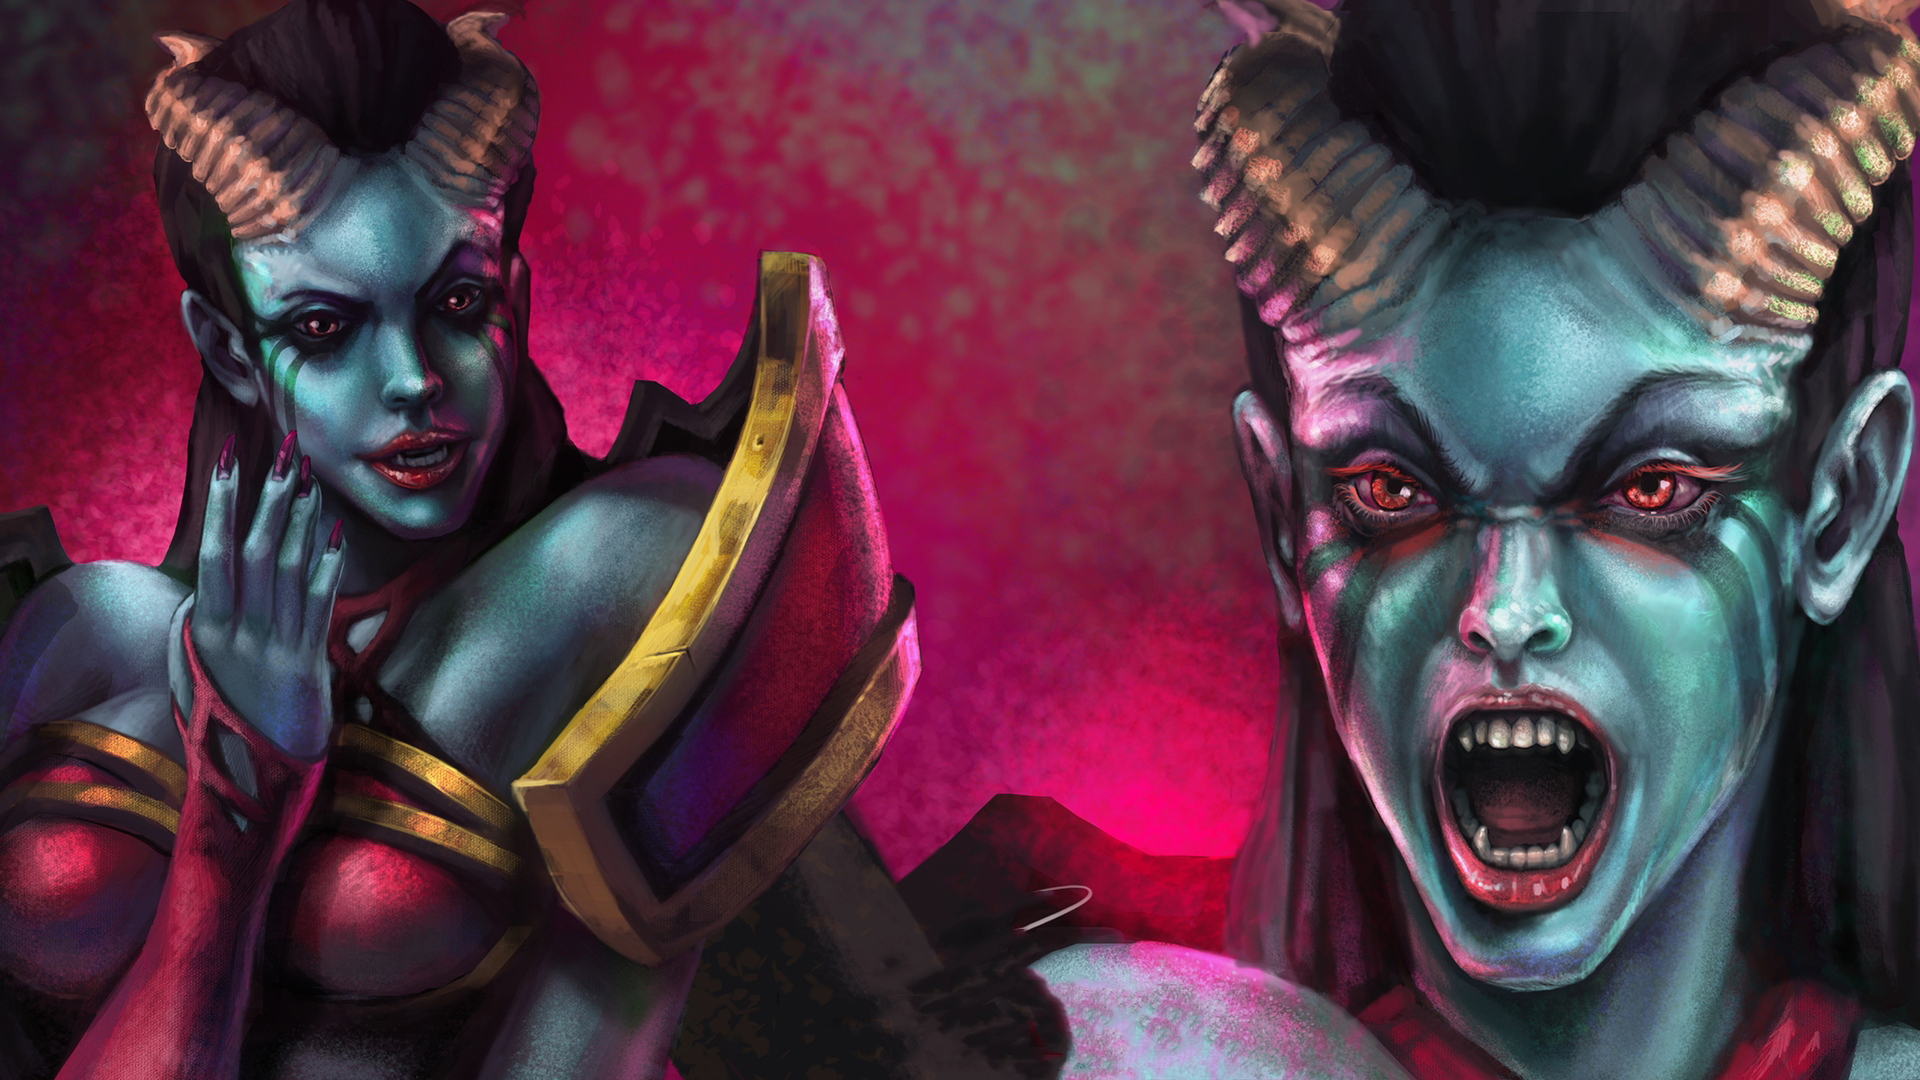 Images Dota 2 Queen Of Pain Demons Horns Face Girls 1920x1080